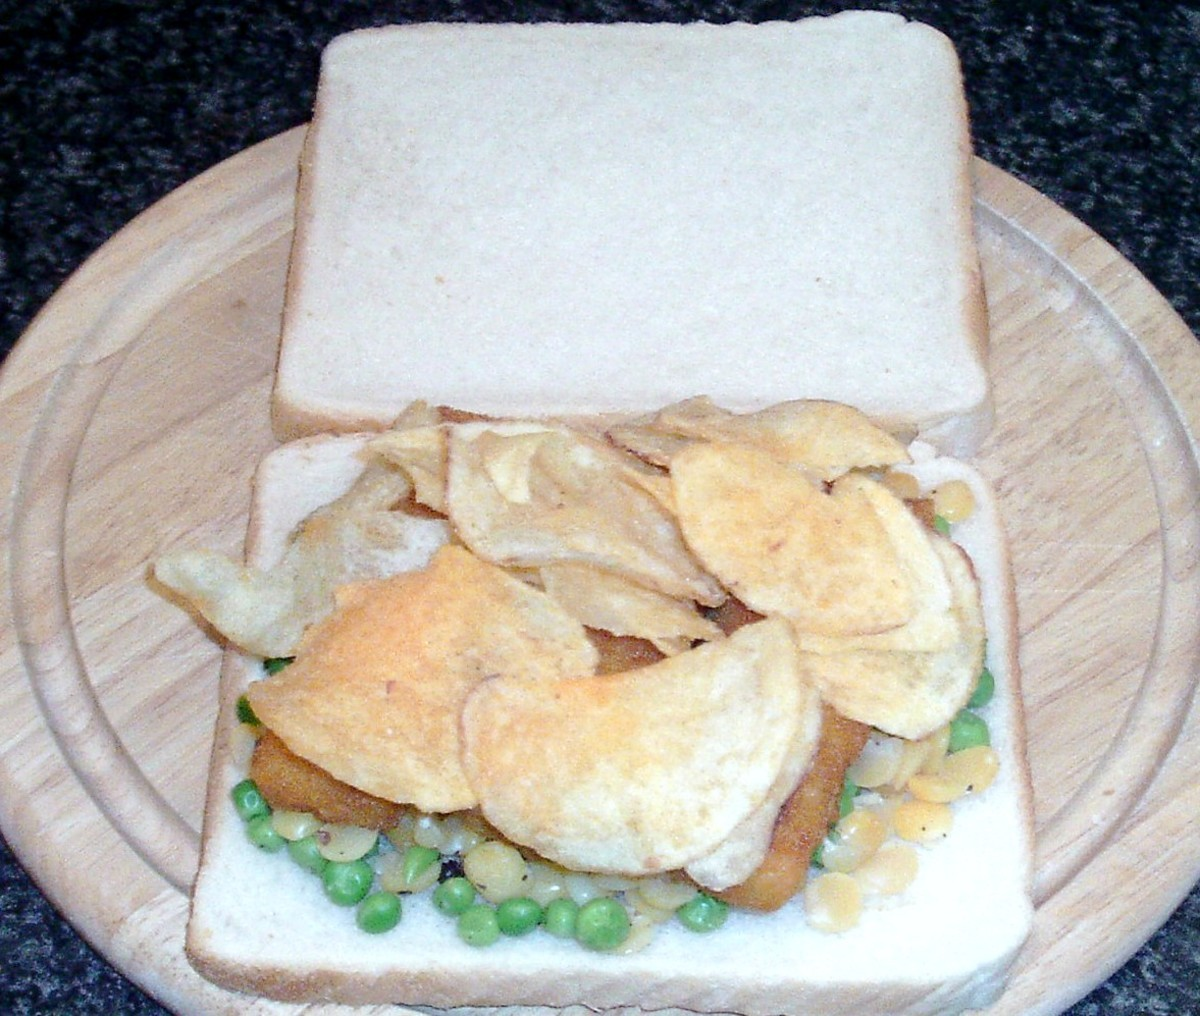 Cheese and onion crisps are laid on fish fingers